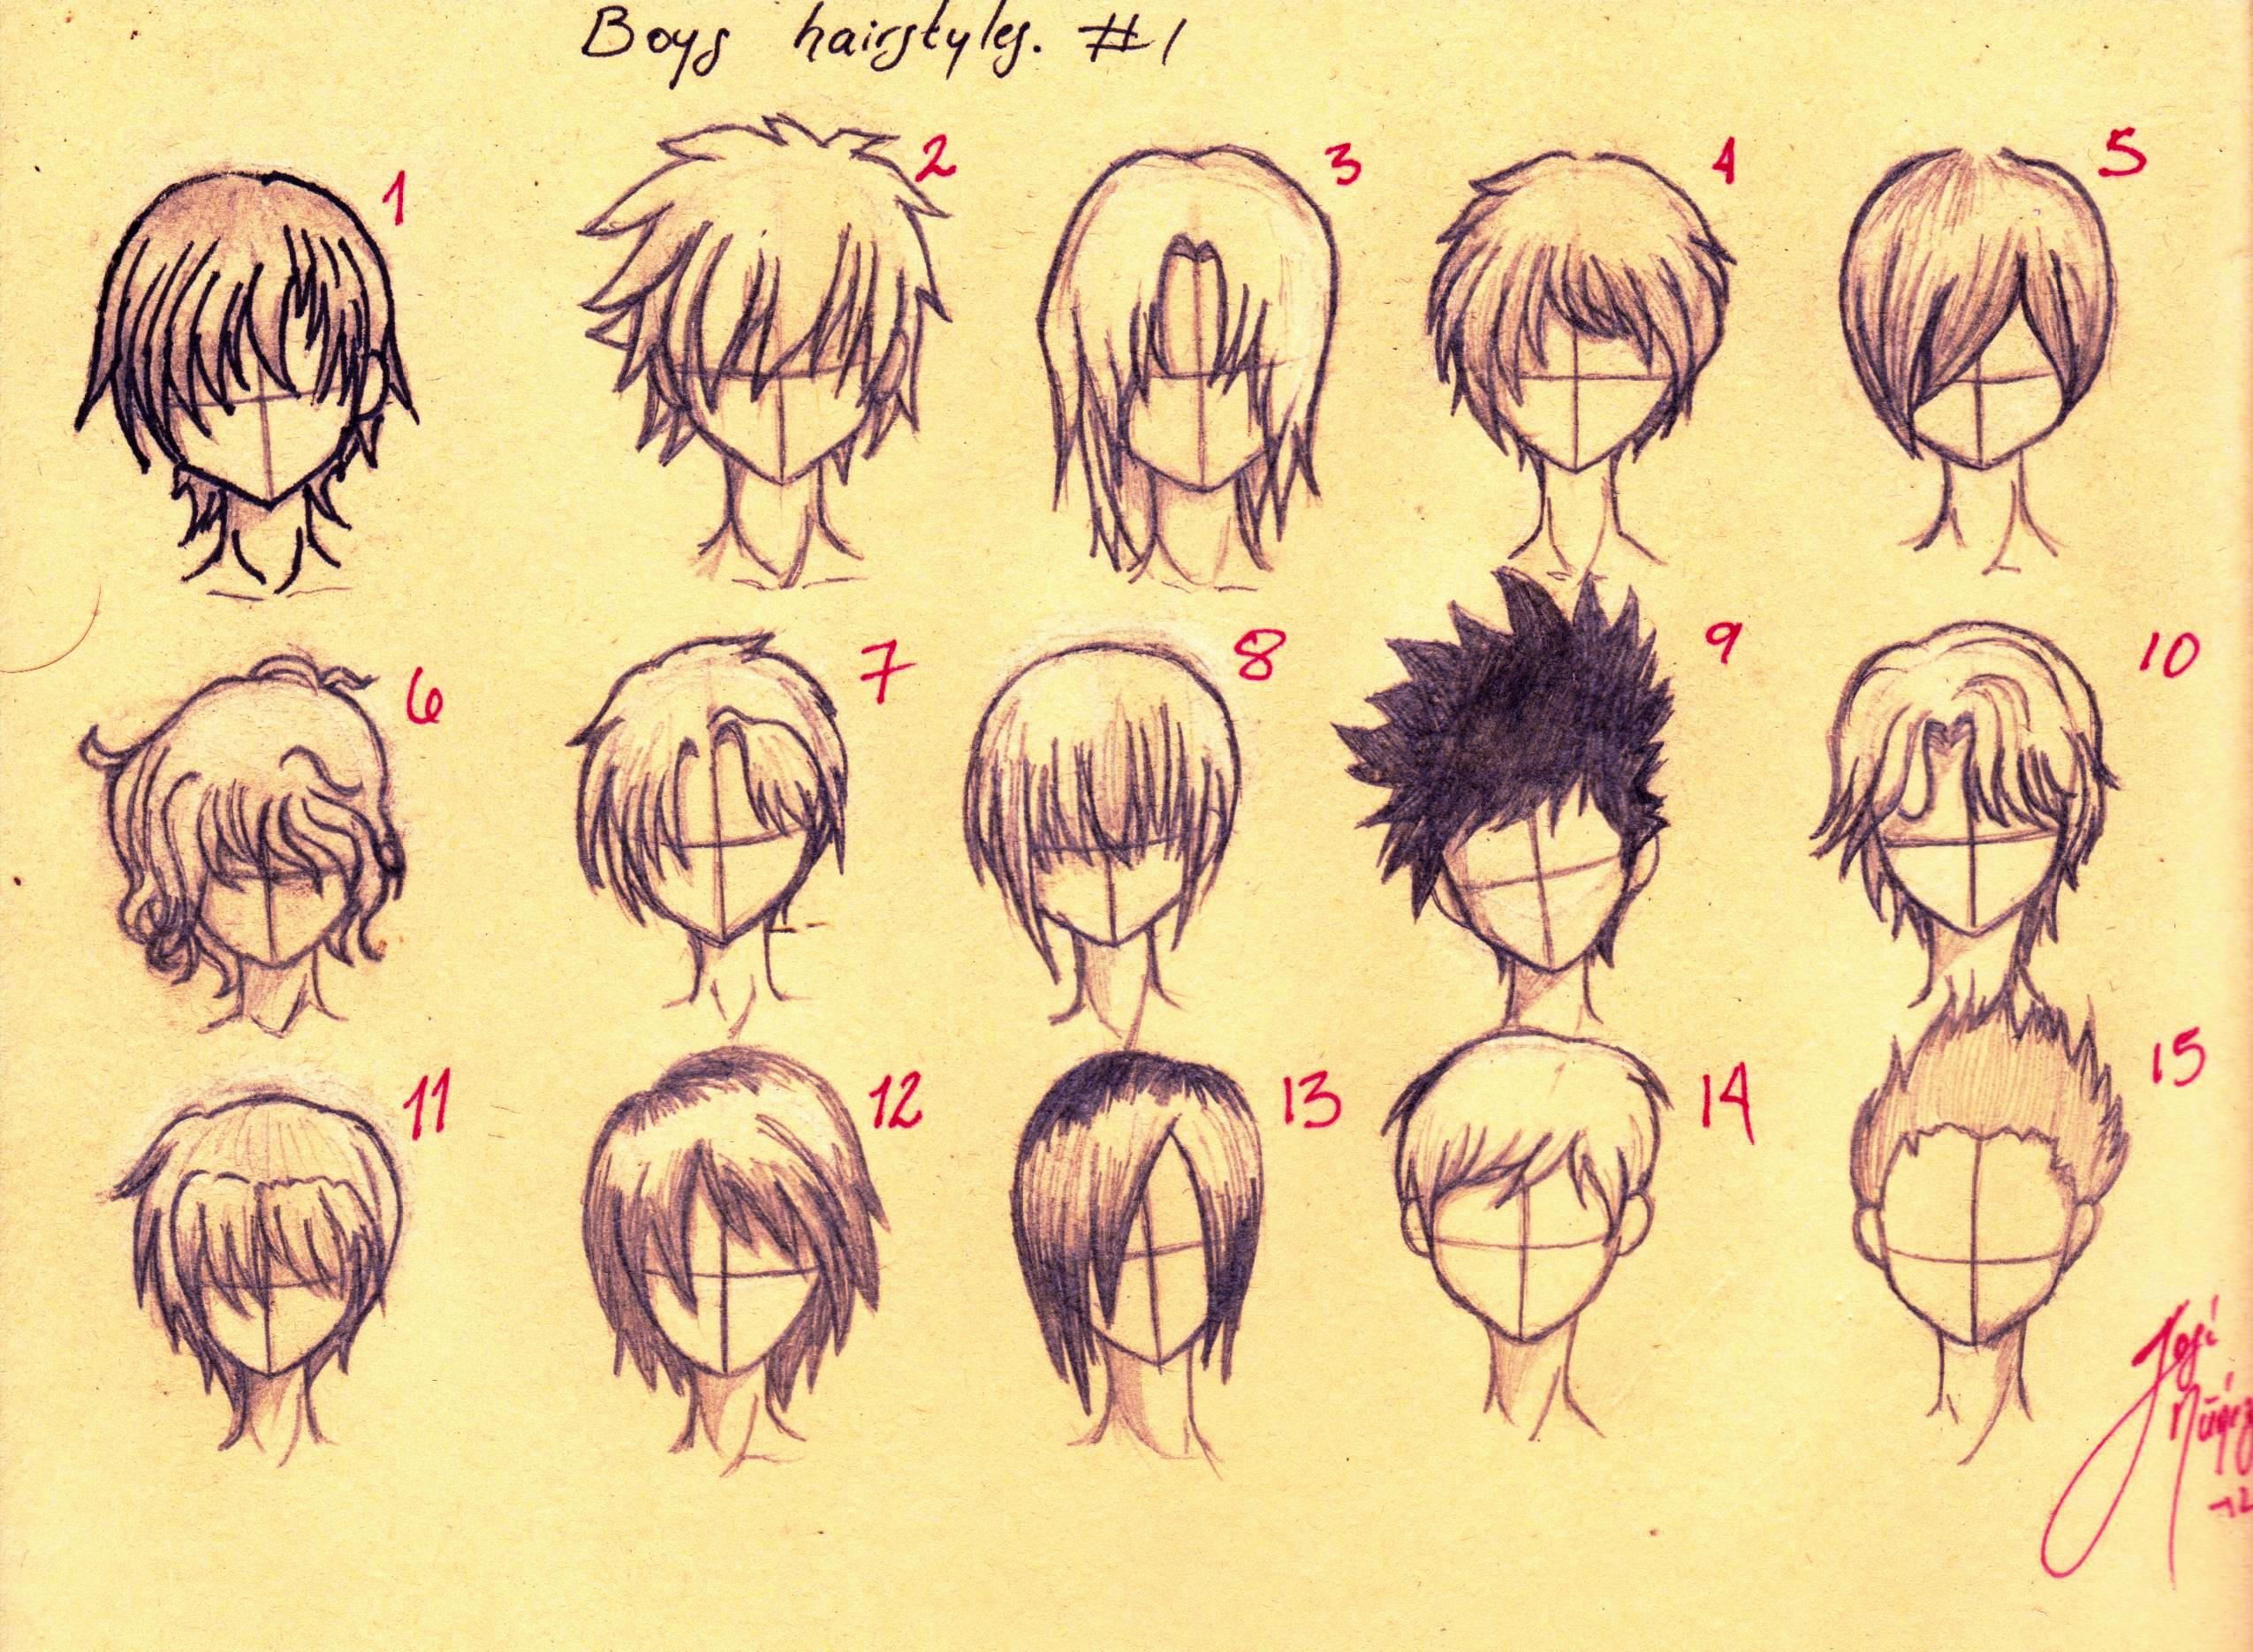 2550x1870 Anime Guy Hairstyles Drawing Anime Guy Hairstyles Drawing